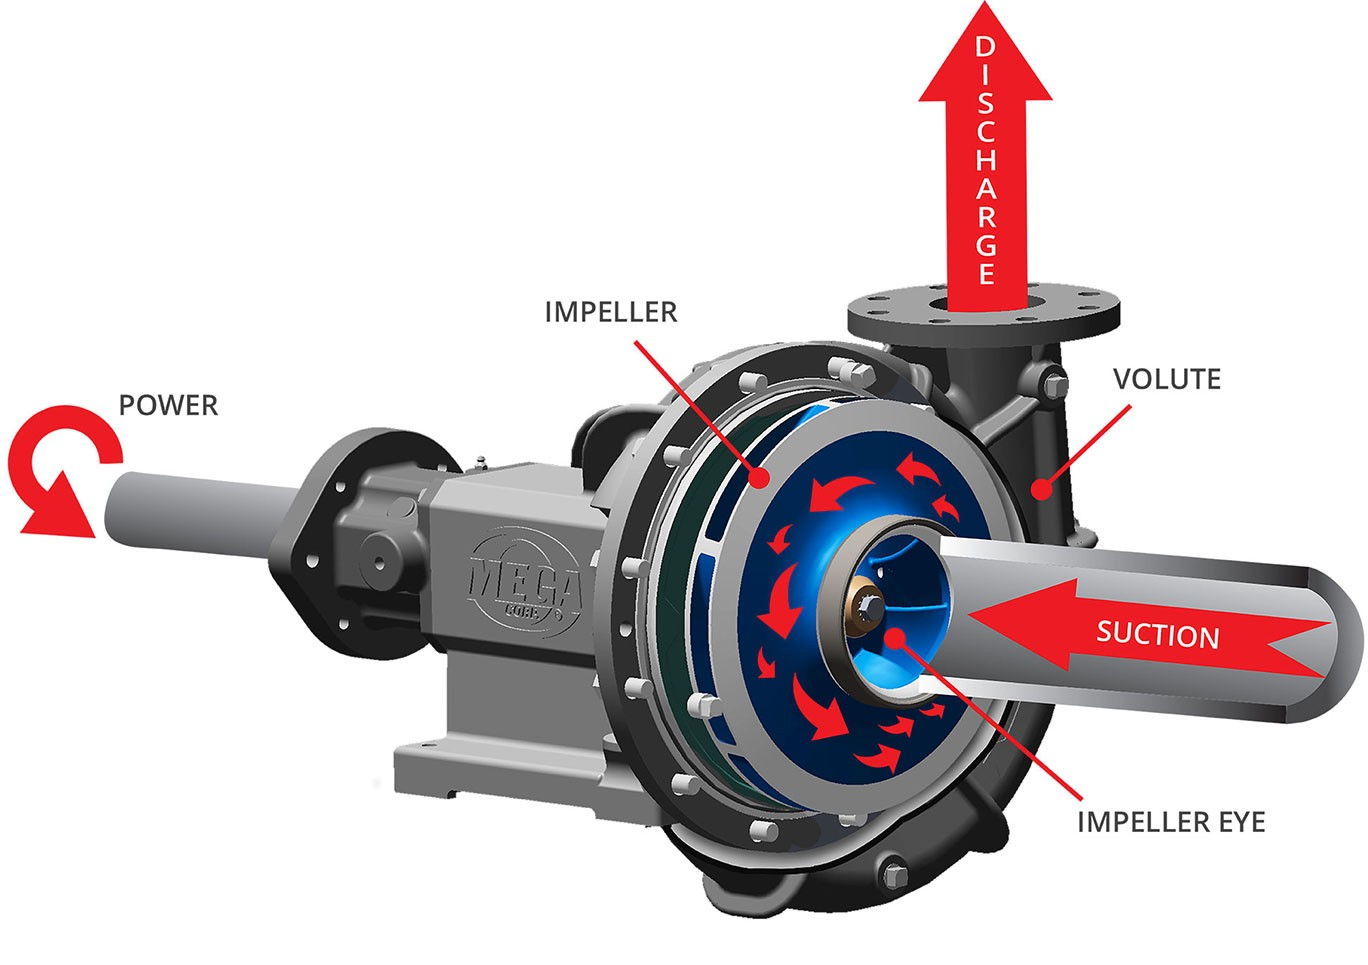 shaft and pulley are an example of prime mover